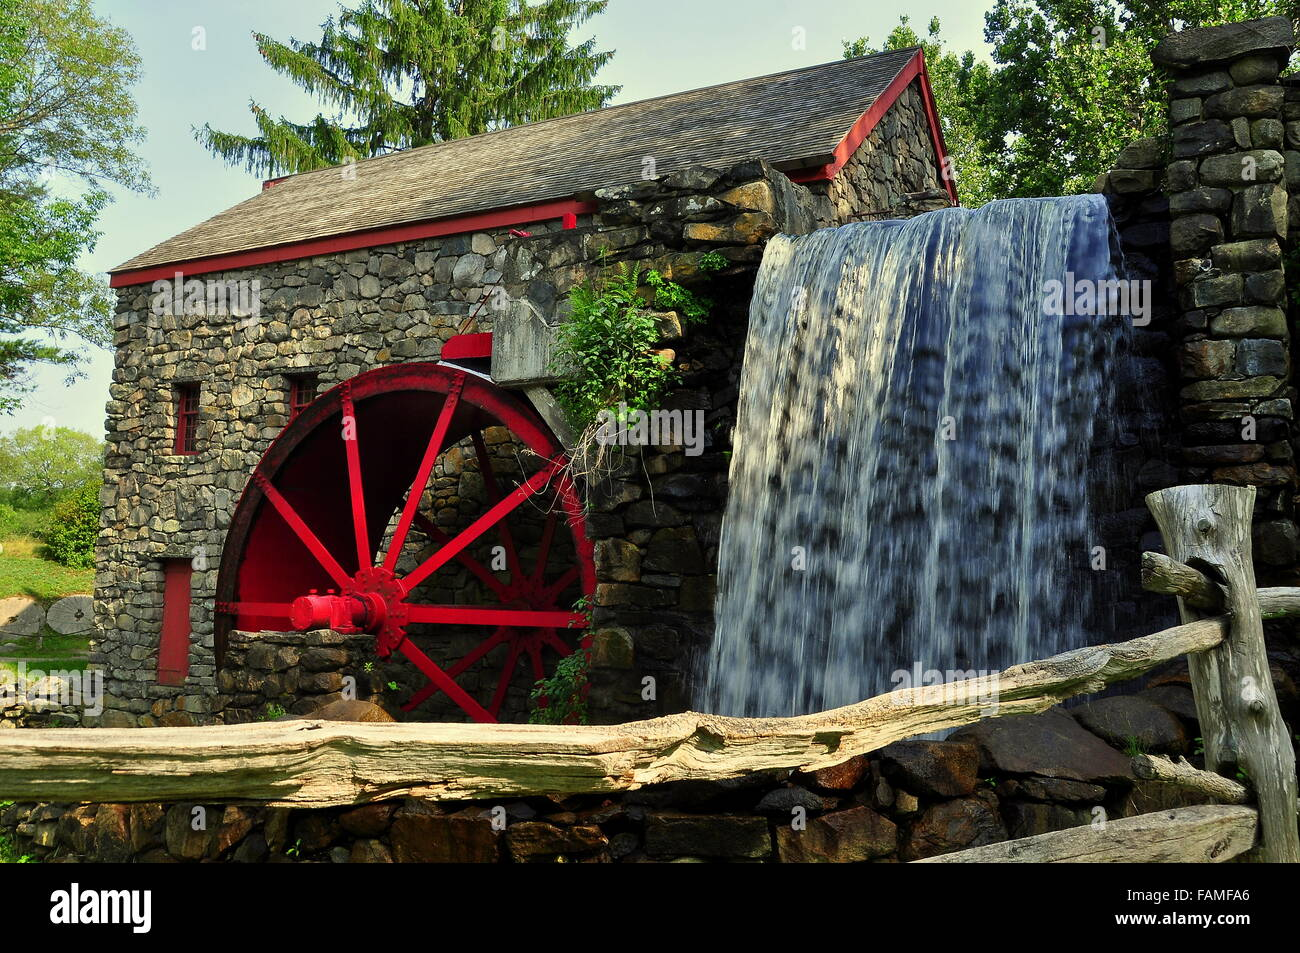 Marble Water Wheels : Sudbury massachusetts the old stone grist mill with